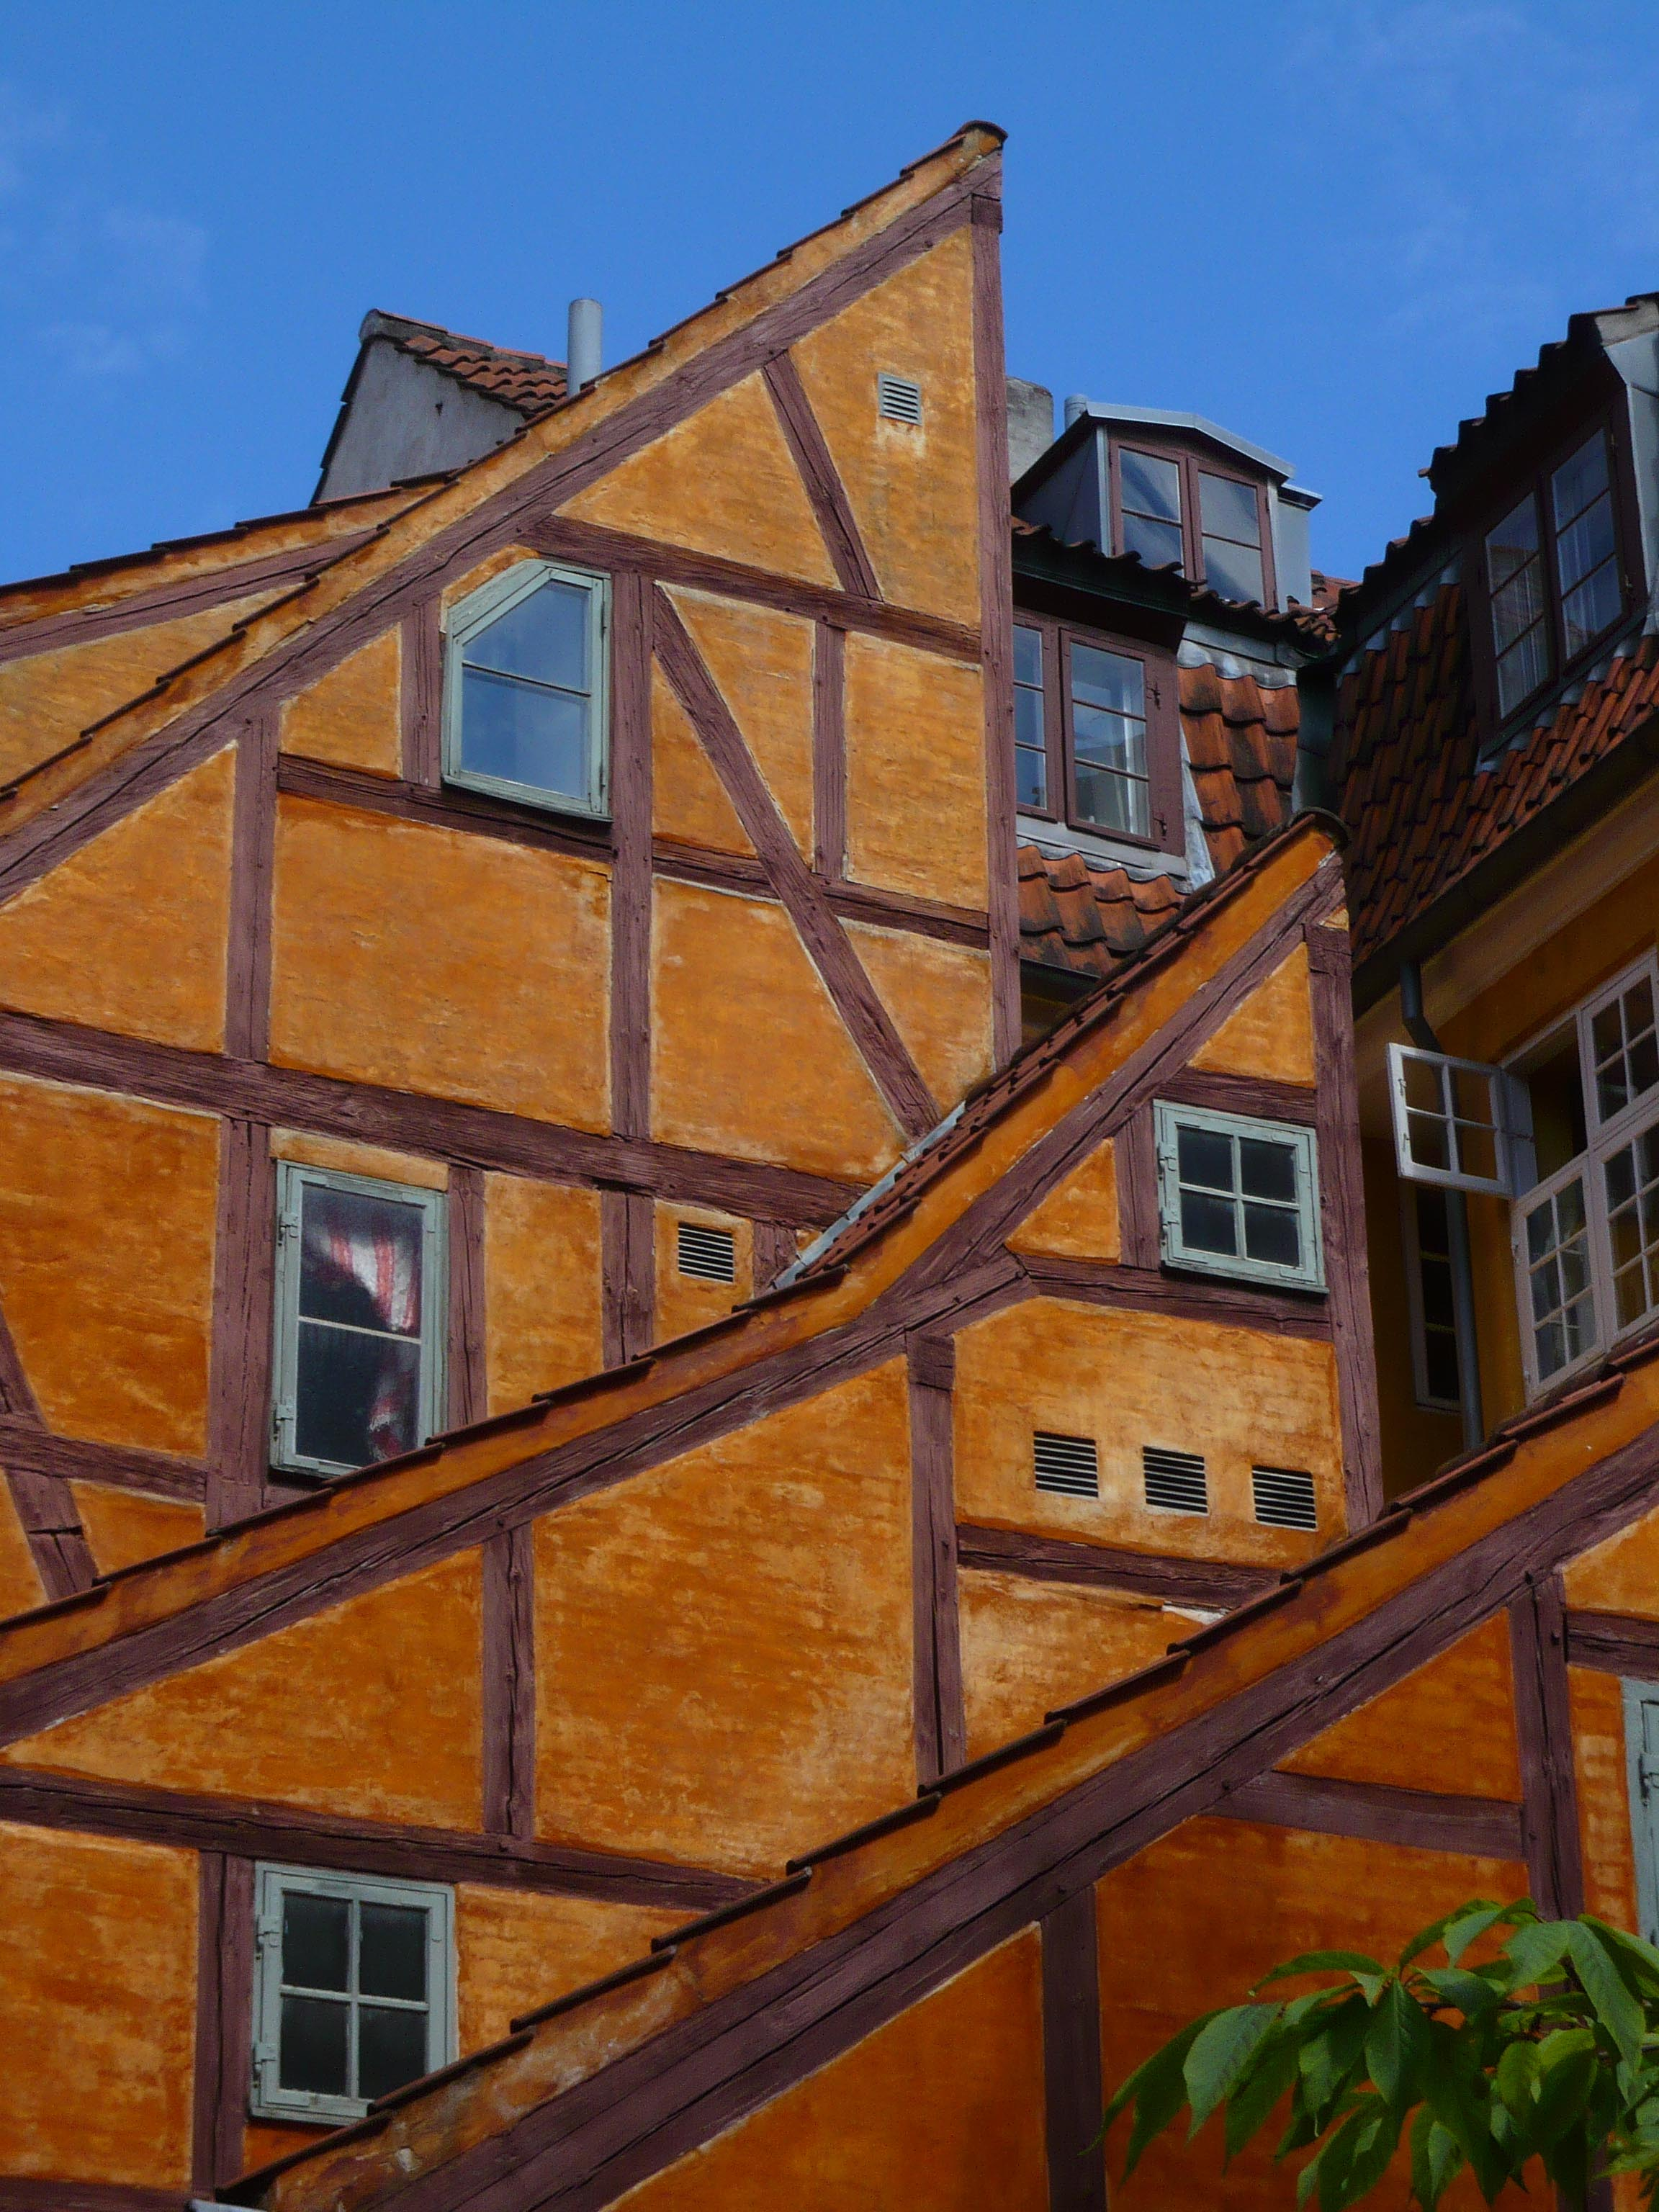 Timber-framed buildings in a courtyard in Copenhagen